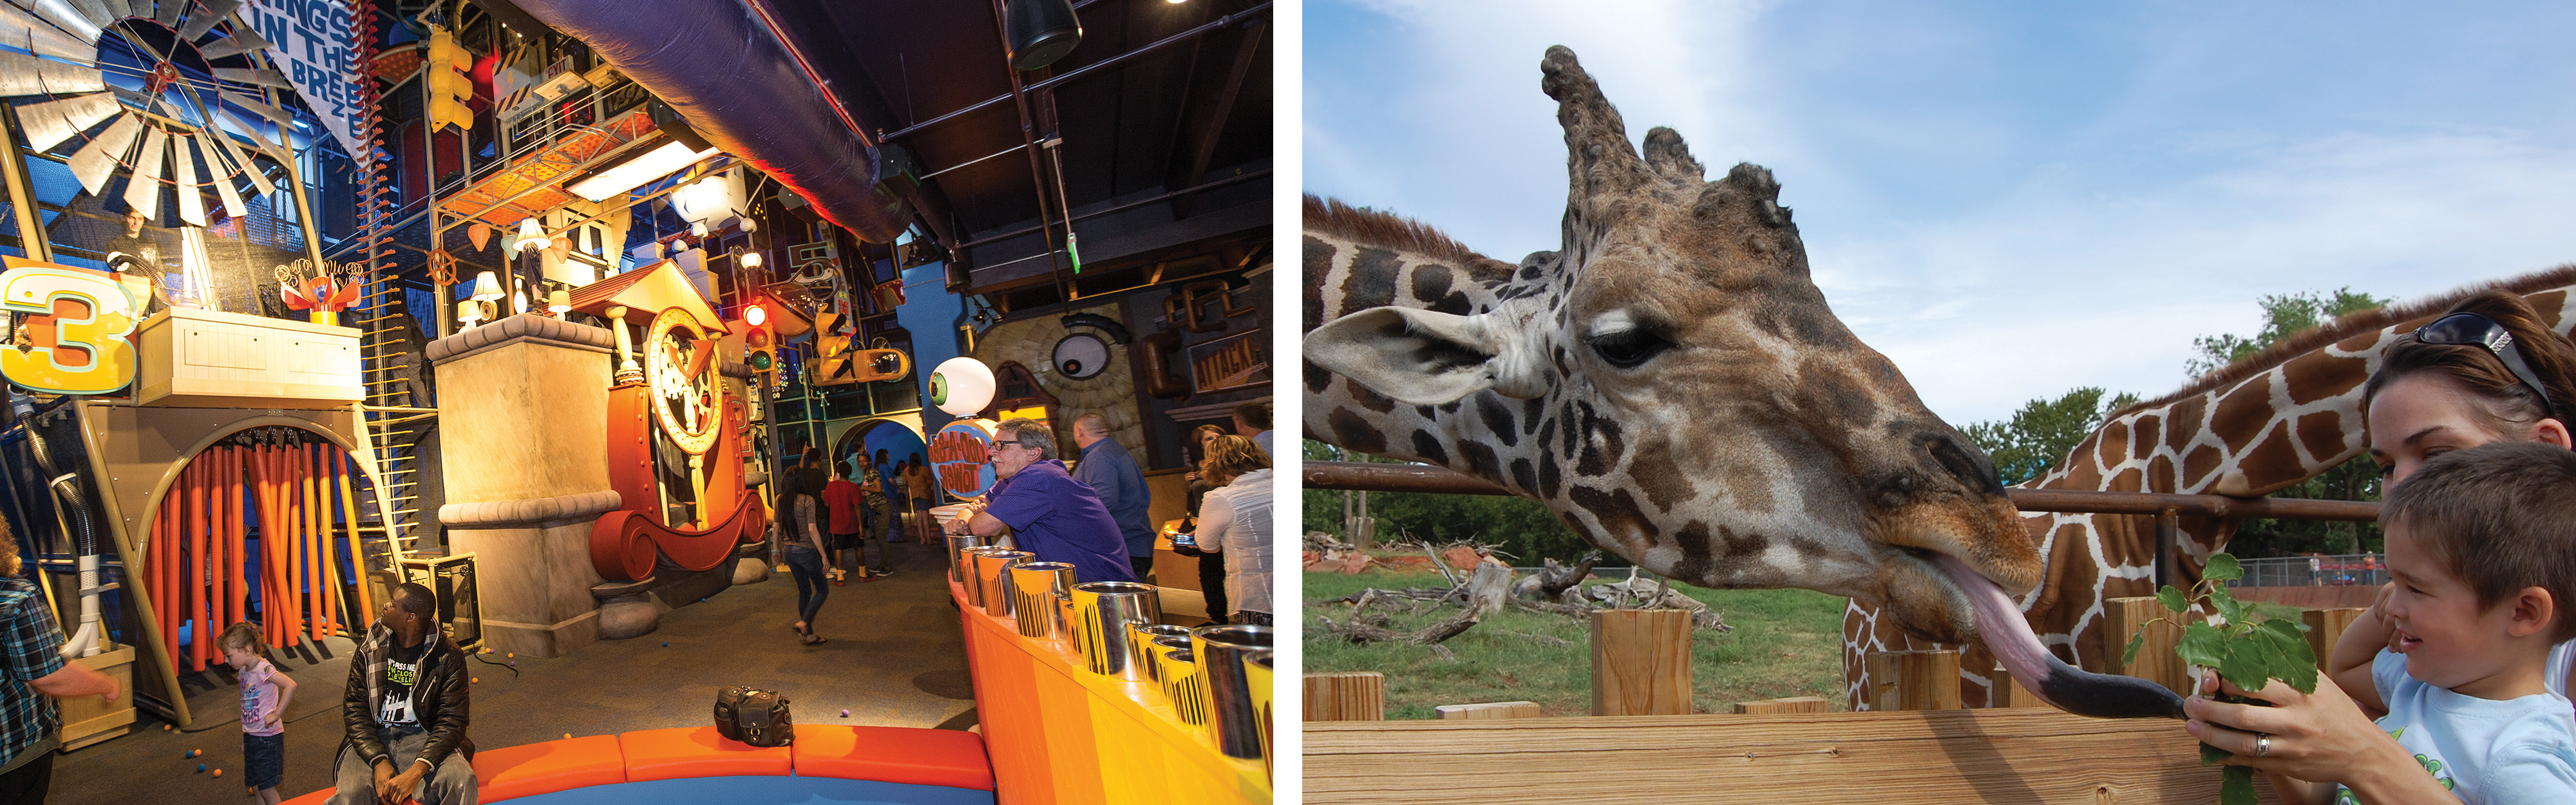 Things To Do With Kids Amp Family Fun In Oklahoma City